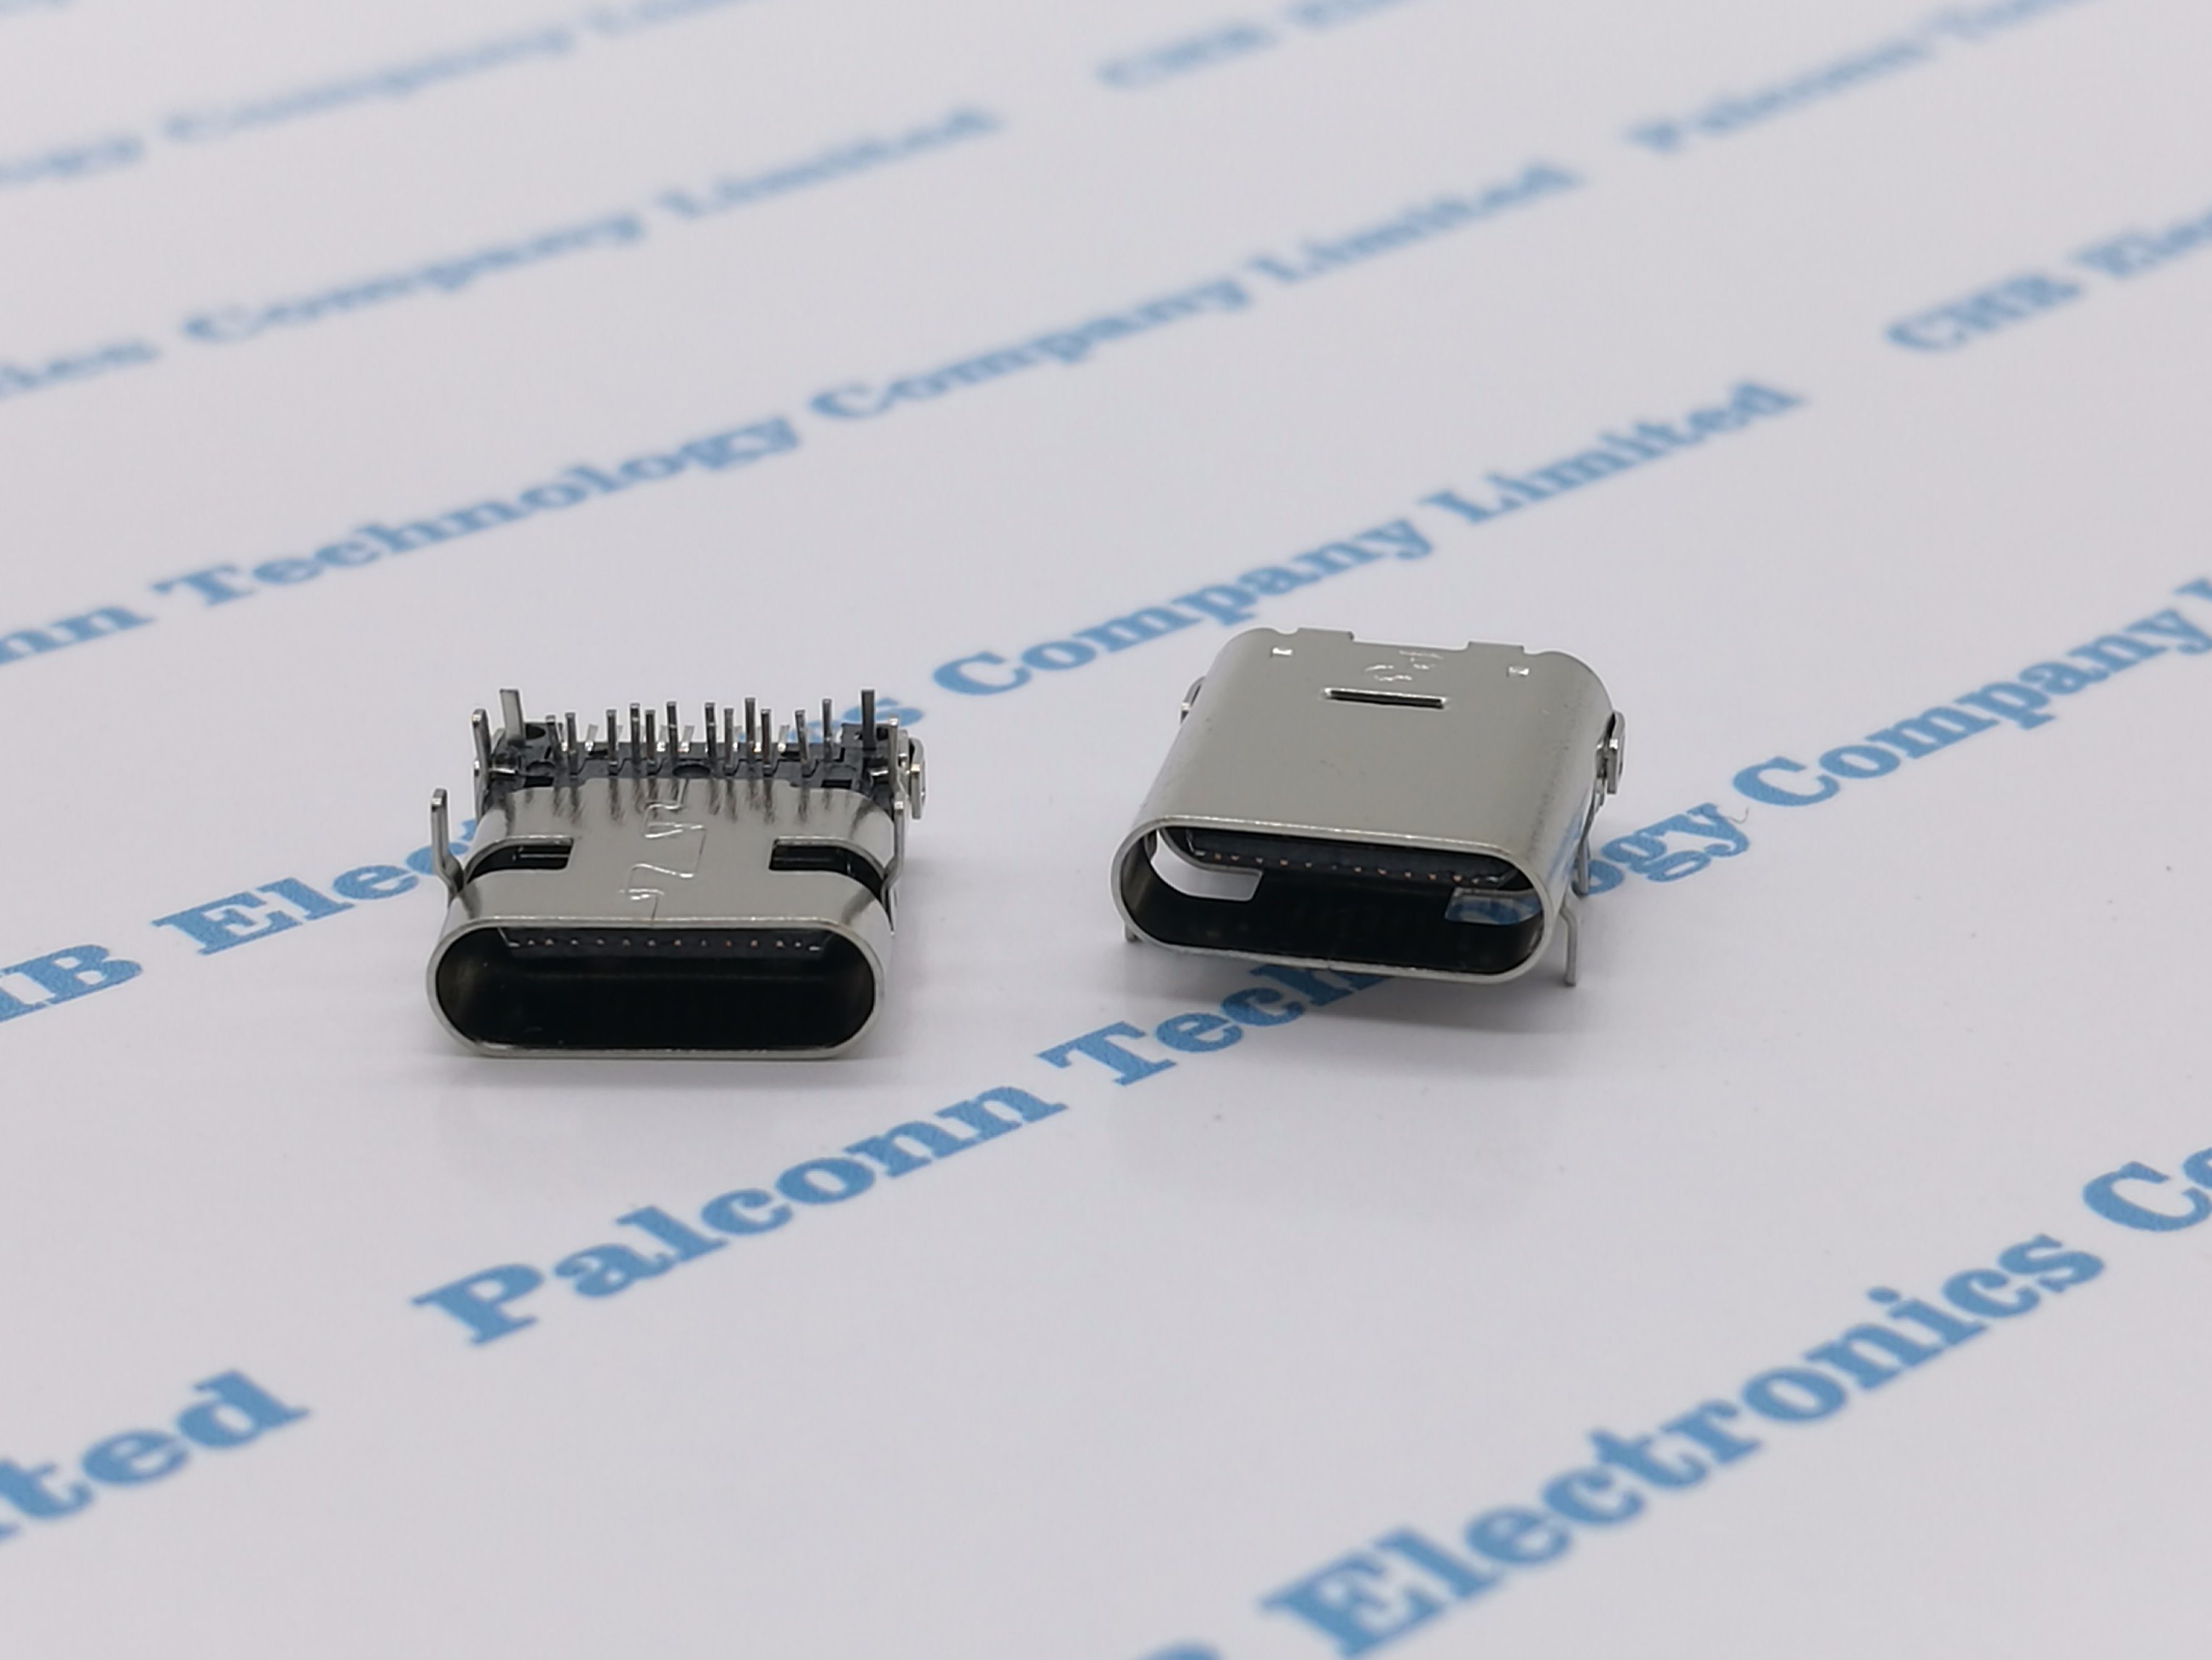 24pin USB3.1 Type C Connector, USB-If Tid Number: 5200000283